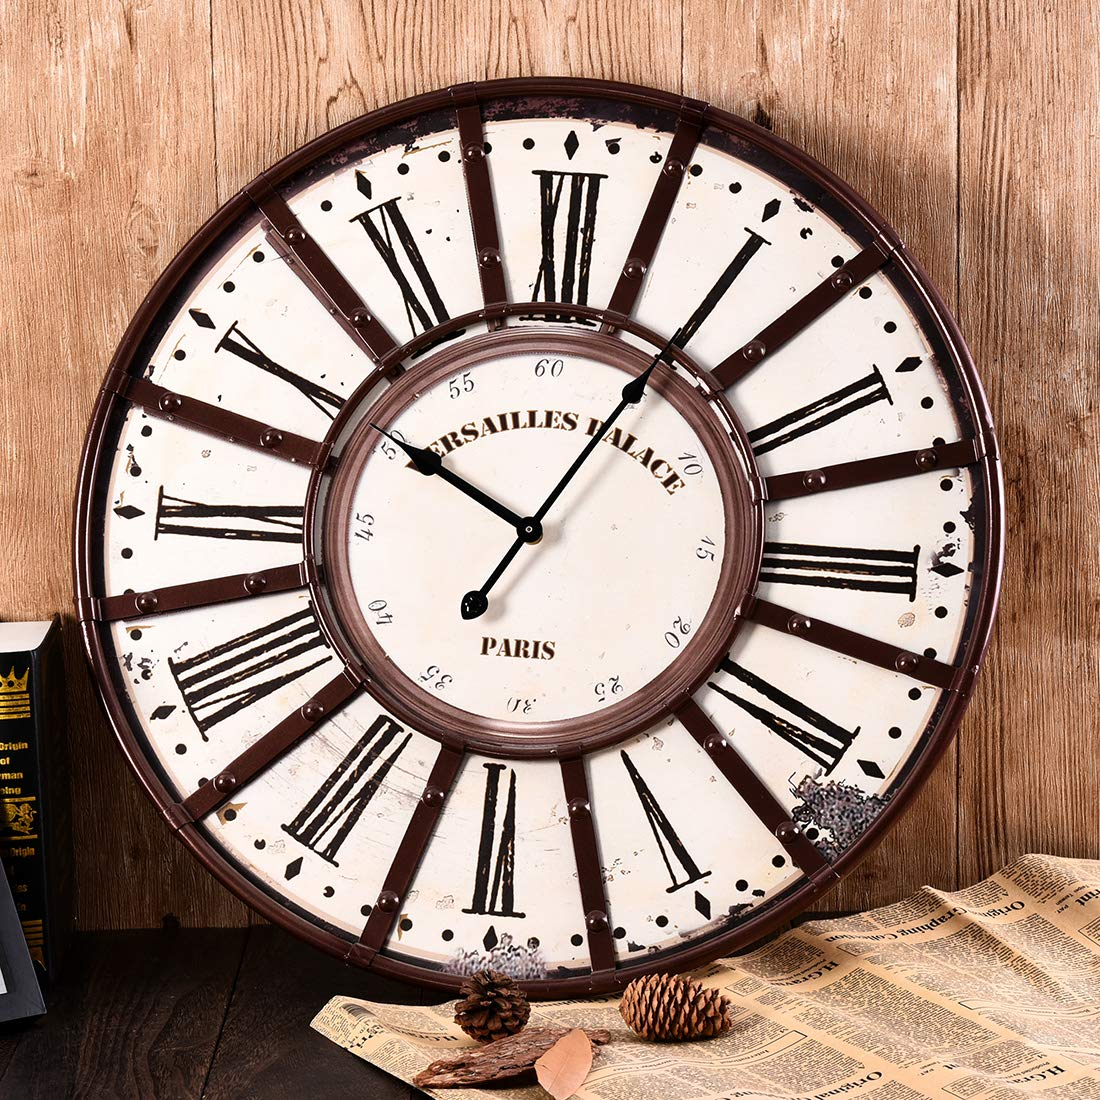 Amazon.com: RuiyiF Vintage Wall Clocks Large Decorative, Oversized Wall Clock Rustic Metal Battery Operated Retro Silent Non Ticking Noise 23 Inch Easy to ...